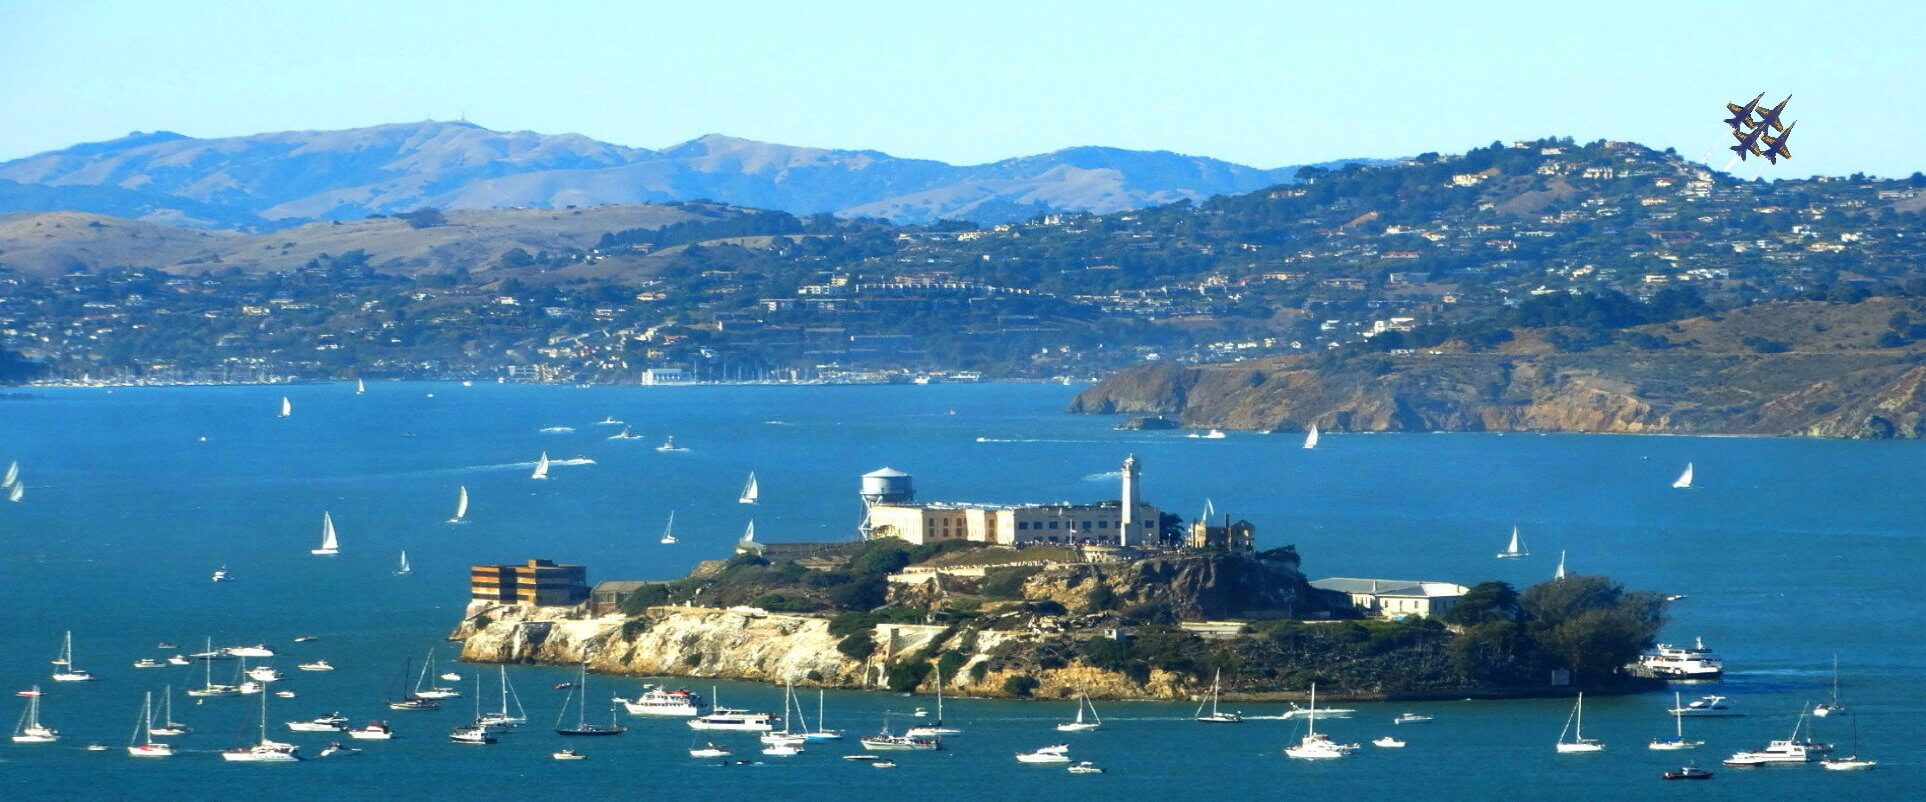 visit-alcatraz-island-and-prison-in-the-san-francisco-bay